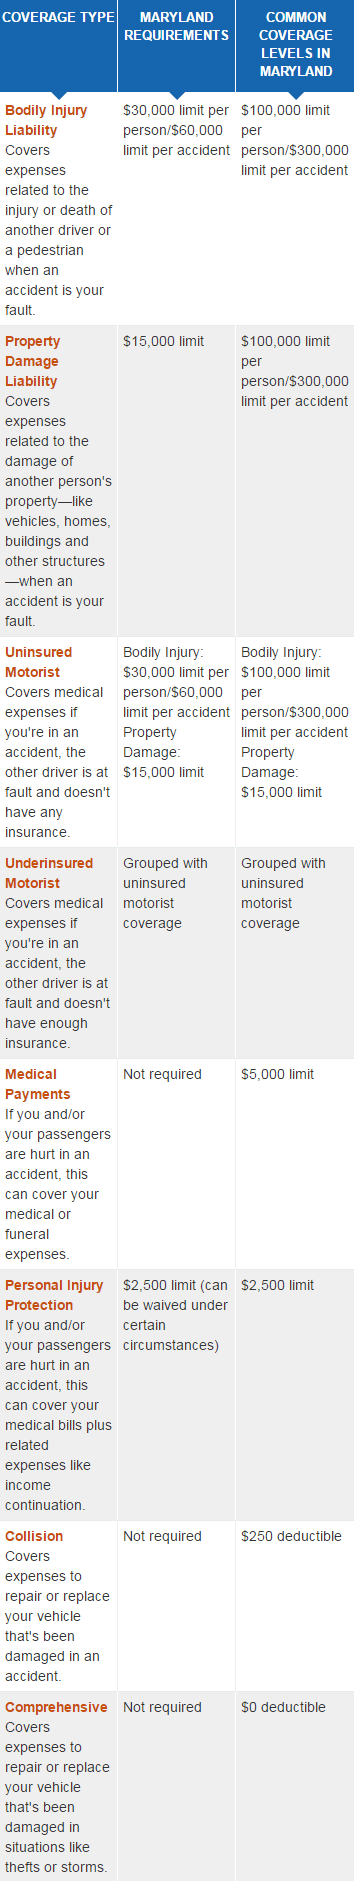 maryland car insurance